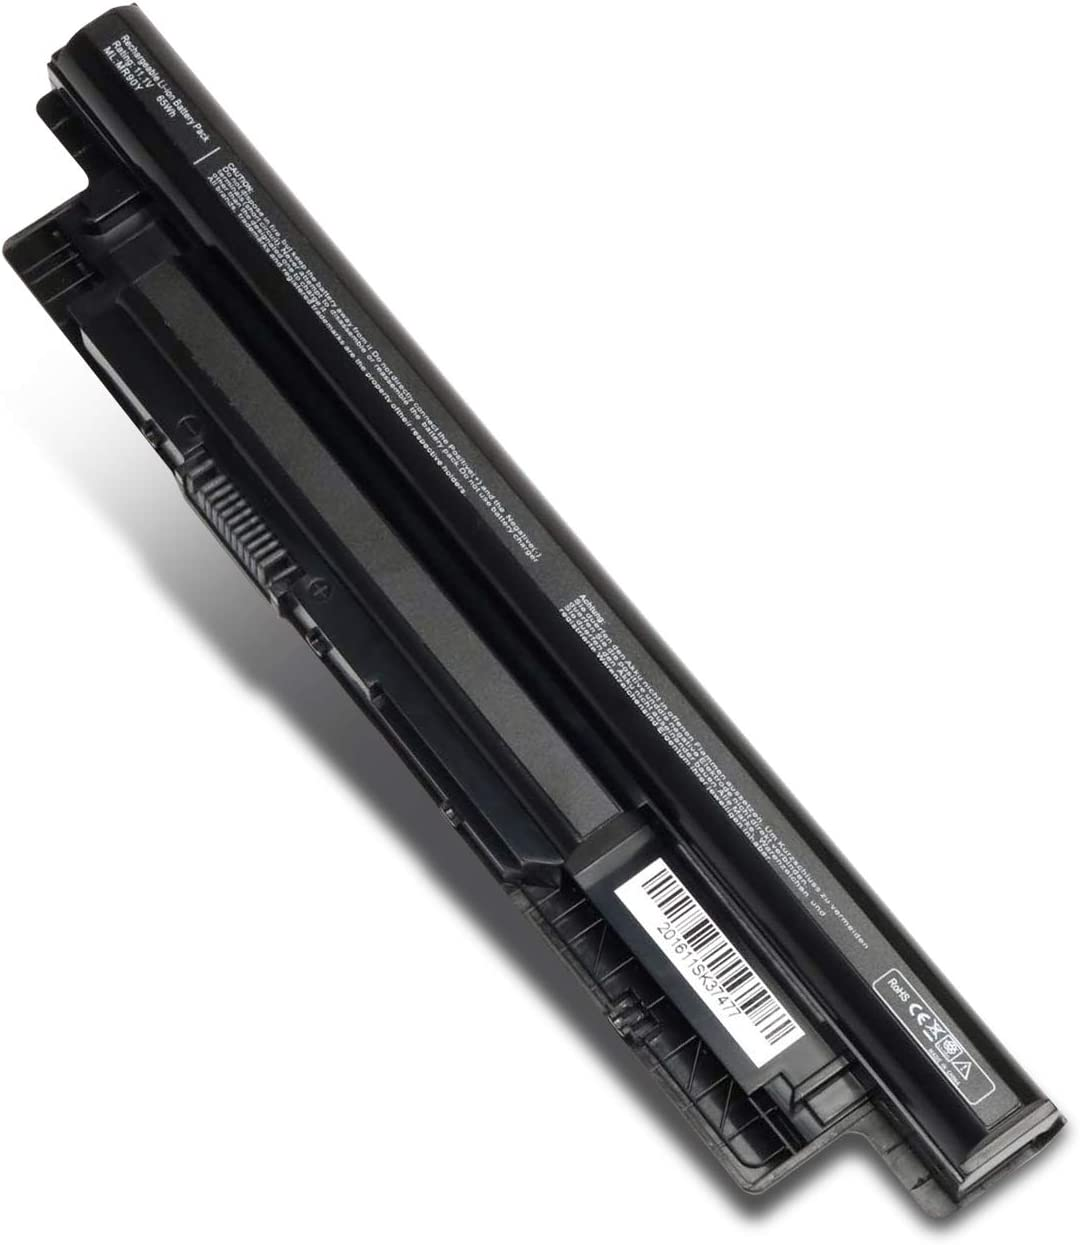 MR90Y Battery Dell Inspiron14 3421 3437 14R 5437 5421 17R 5737 5721 17 3721 3737 15 3542 3521 15R 5537 5521Dell Latitude 3540 3440 spare parts P/N 0MF69 6HY59 XRDW2 G35K4 New laptop Battery Replacemen